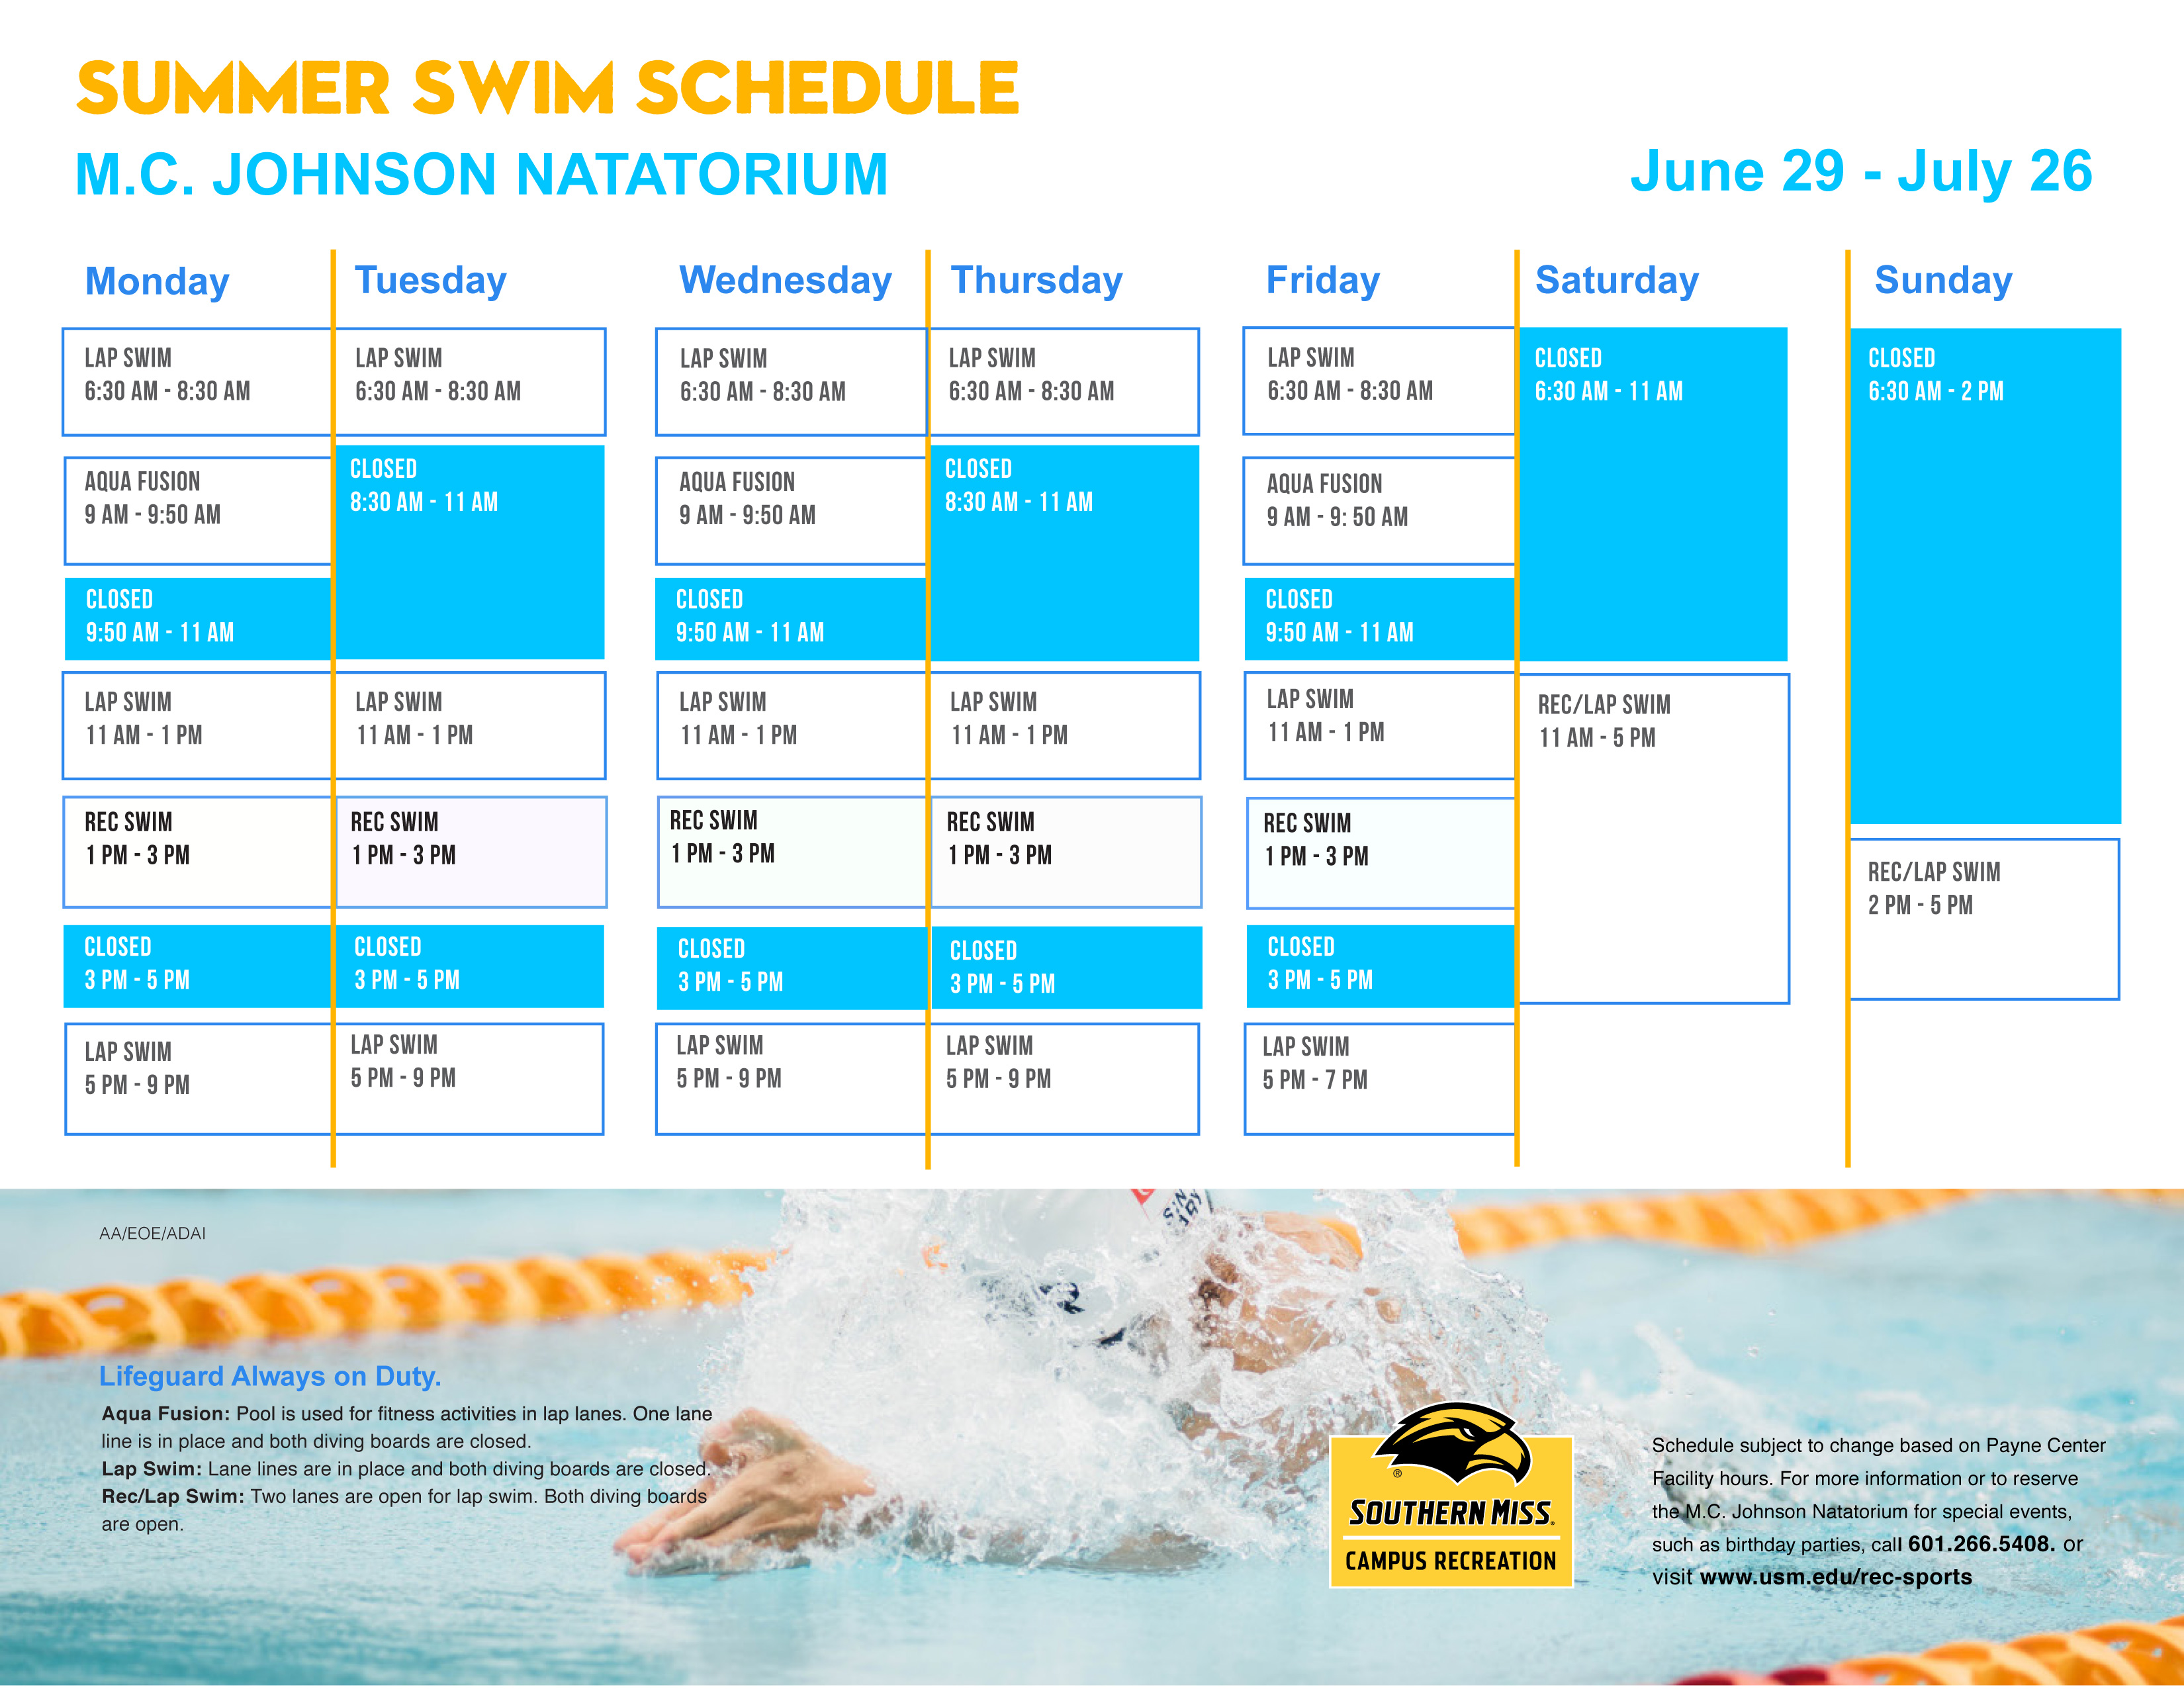 Summer 2 Pool Schedule